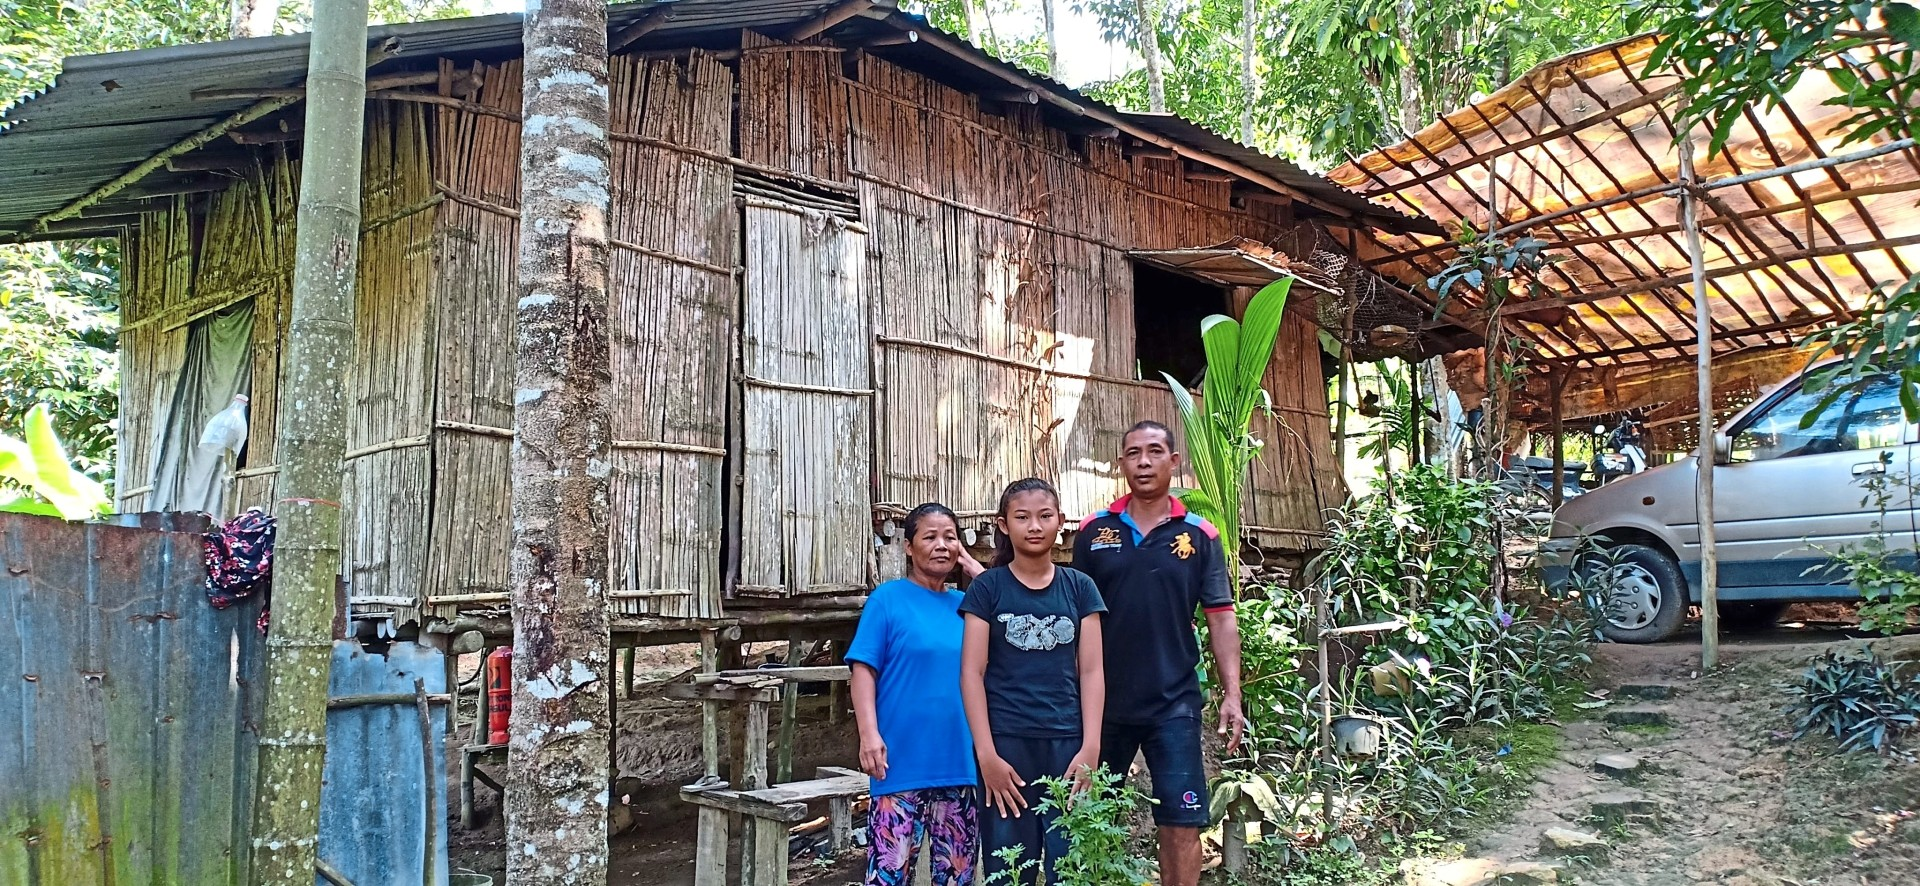 Tepi Teresa Takam, Sari Atan and their youngest daughter standing in front of their old home, which was built from bamboo.